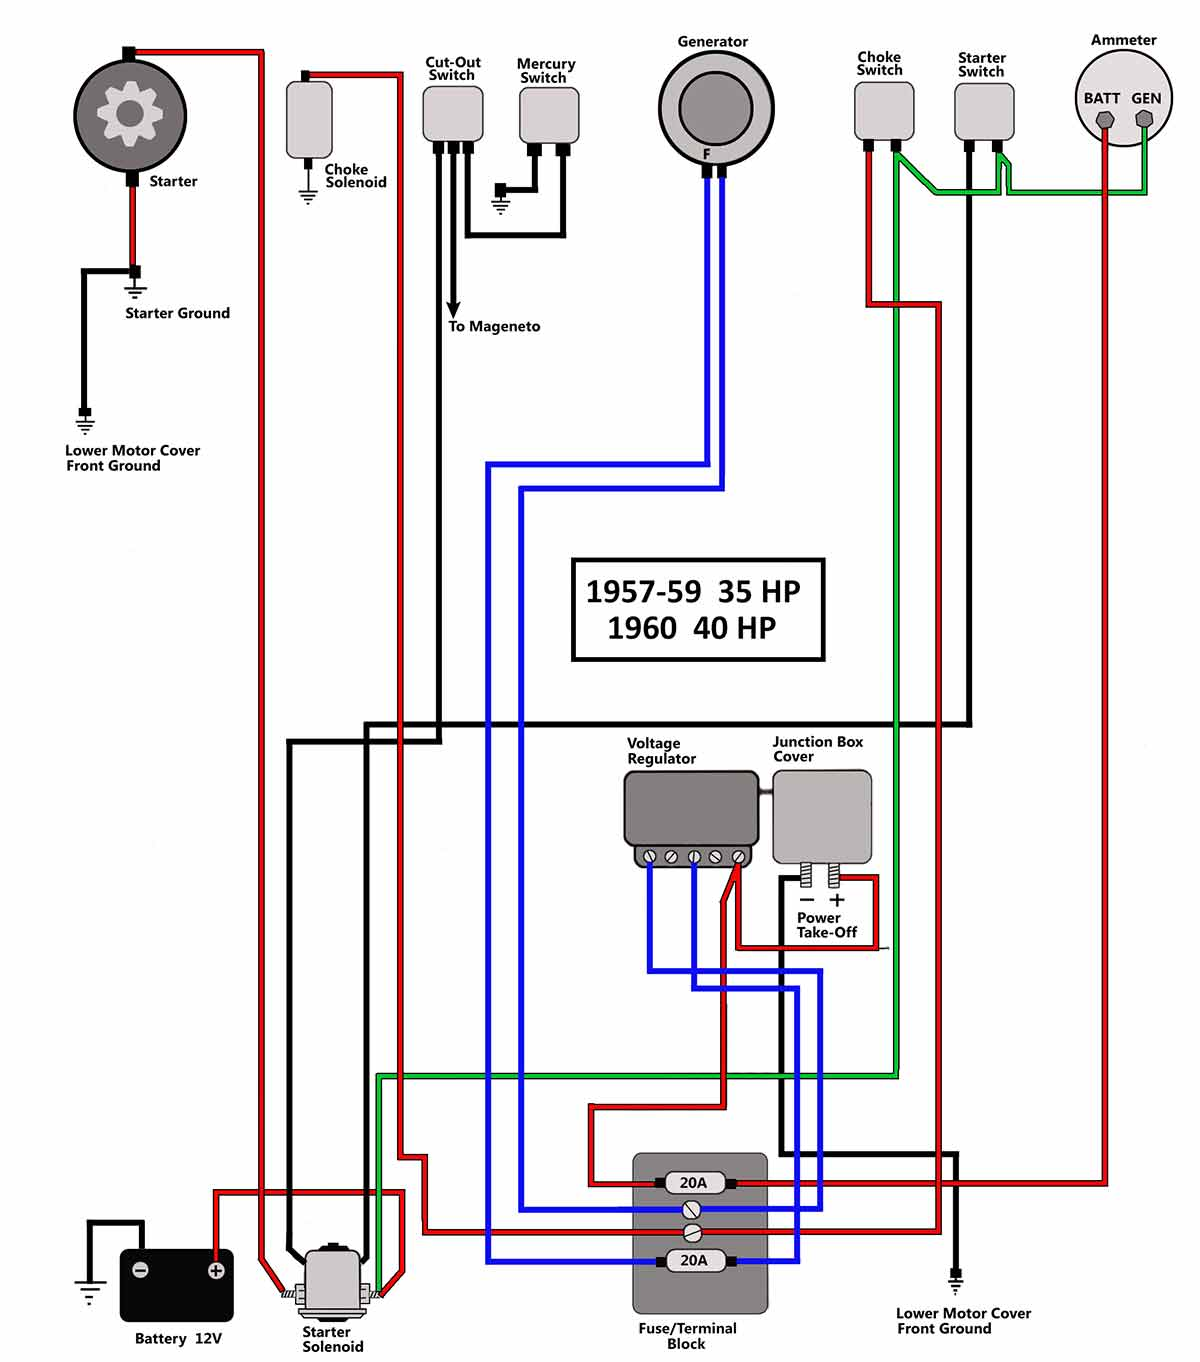 wiring diagram 1997 50 hp evinrude wiring diagram hub 1972 Johnson Outboard Wiring Diagram 50 HP wiring diagram 1997 50 hp evinrude wiring diagram 1981 evinrude 50 timing wiring diagram 1997 50 hp evinrude source 1969 johnson outboard